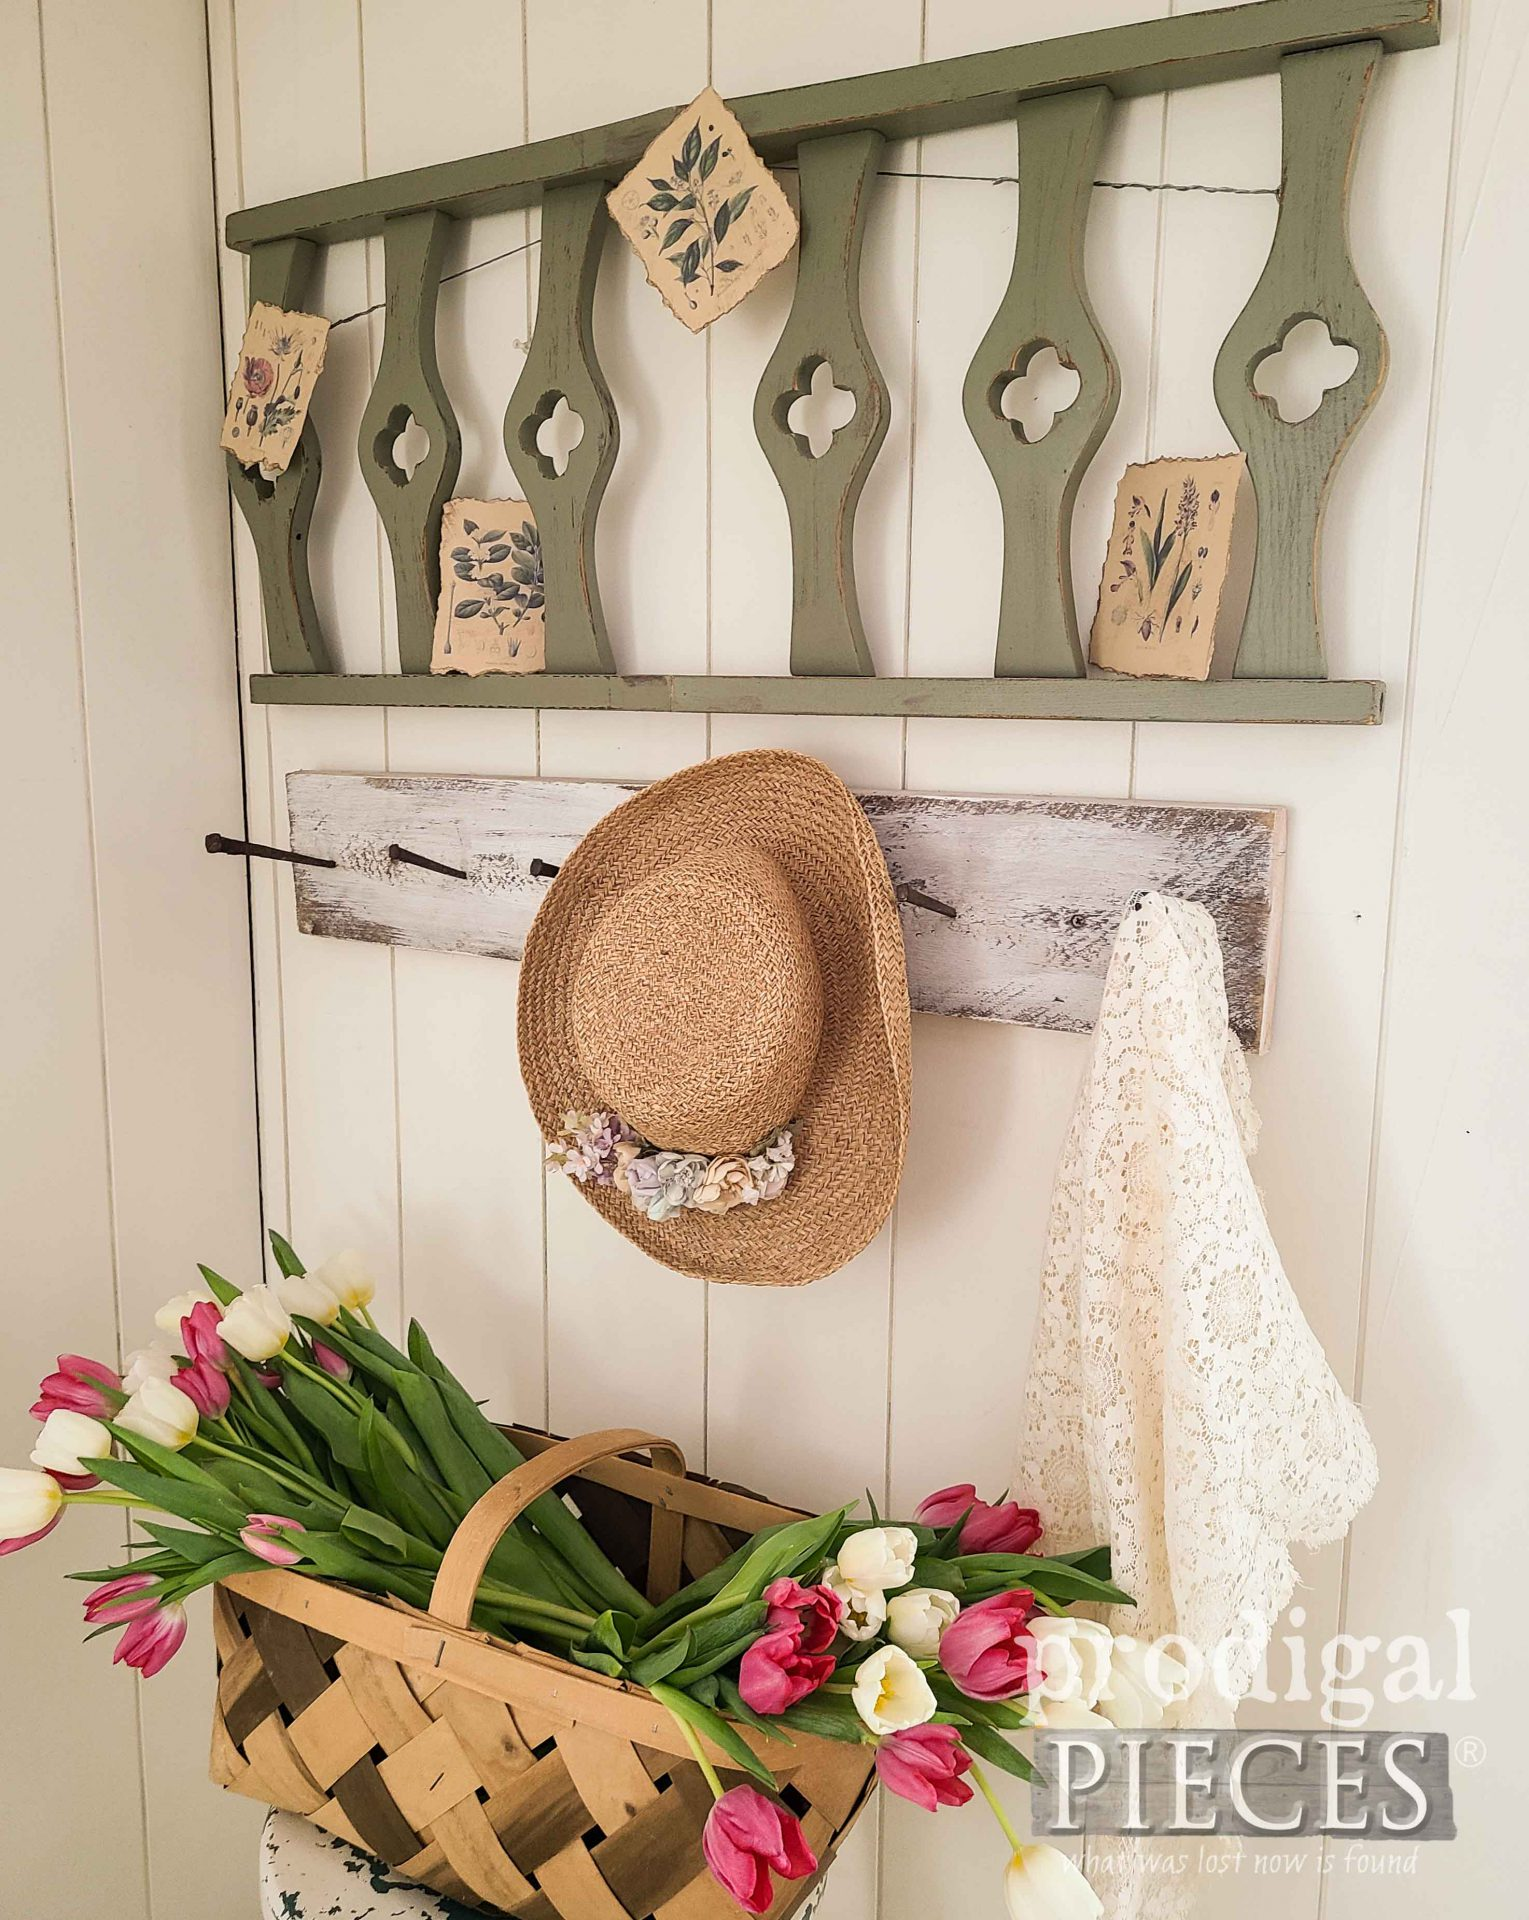 Thrifted Spring Decor Made from Salvaged Finds by Larissa of Prodigal Pieces | prodigalpieces.com #prodigalpieces #spring #farmhouse #diy